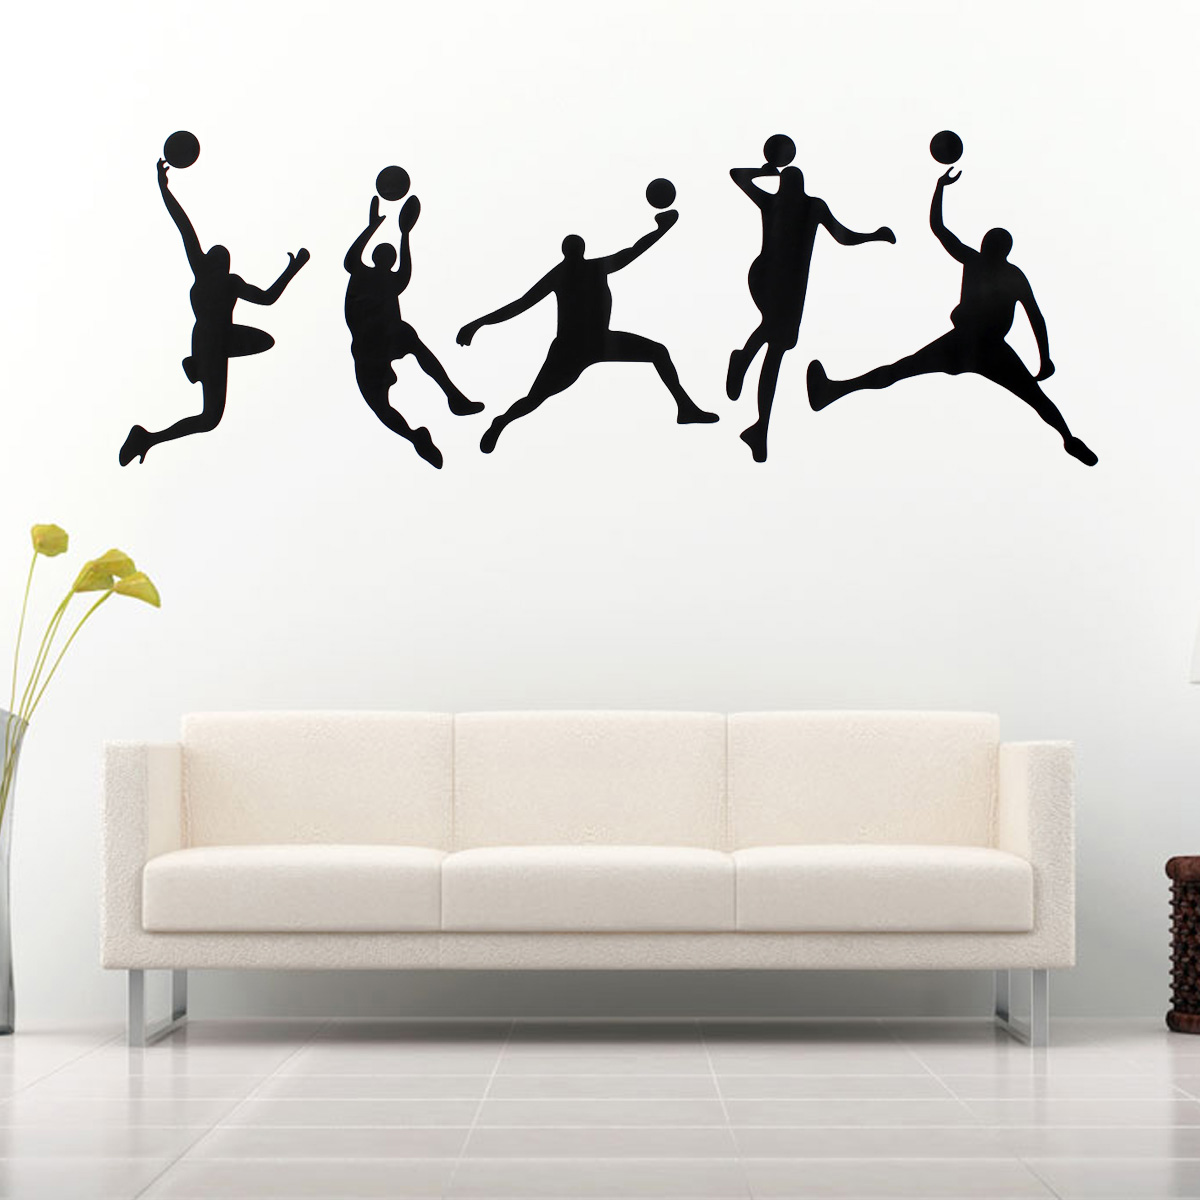 45X126CM Playing Basketball Wall Stickers Removable Sports Decal Home Room Decor Wall Sticker